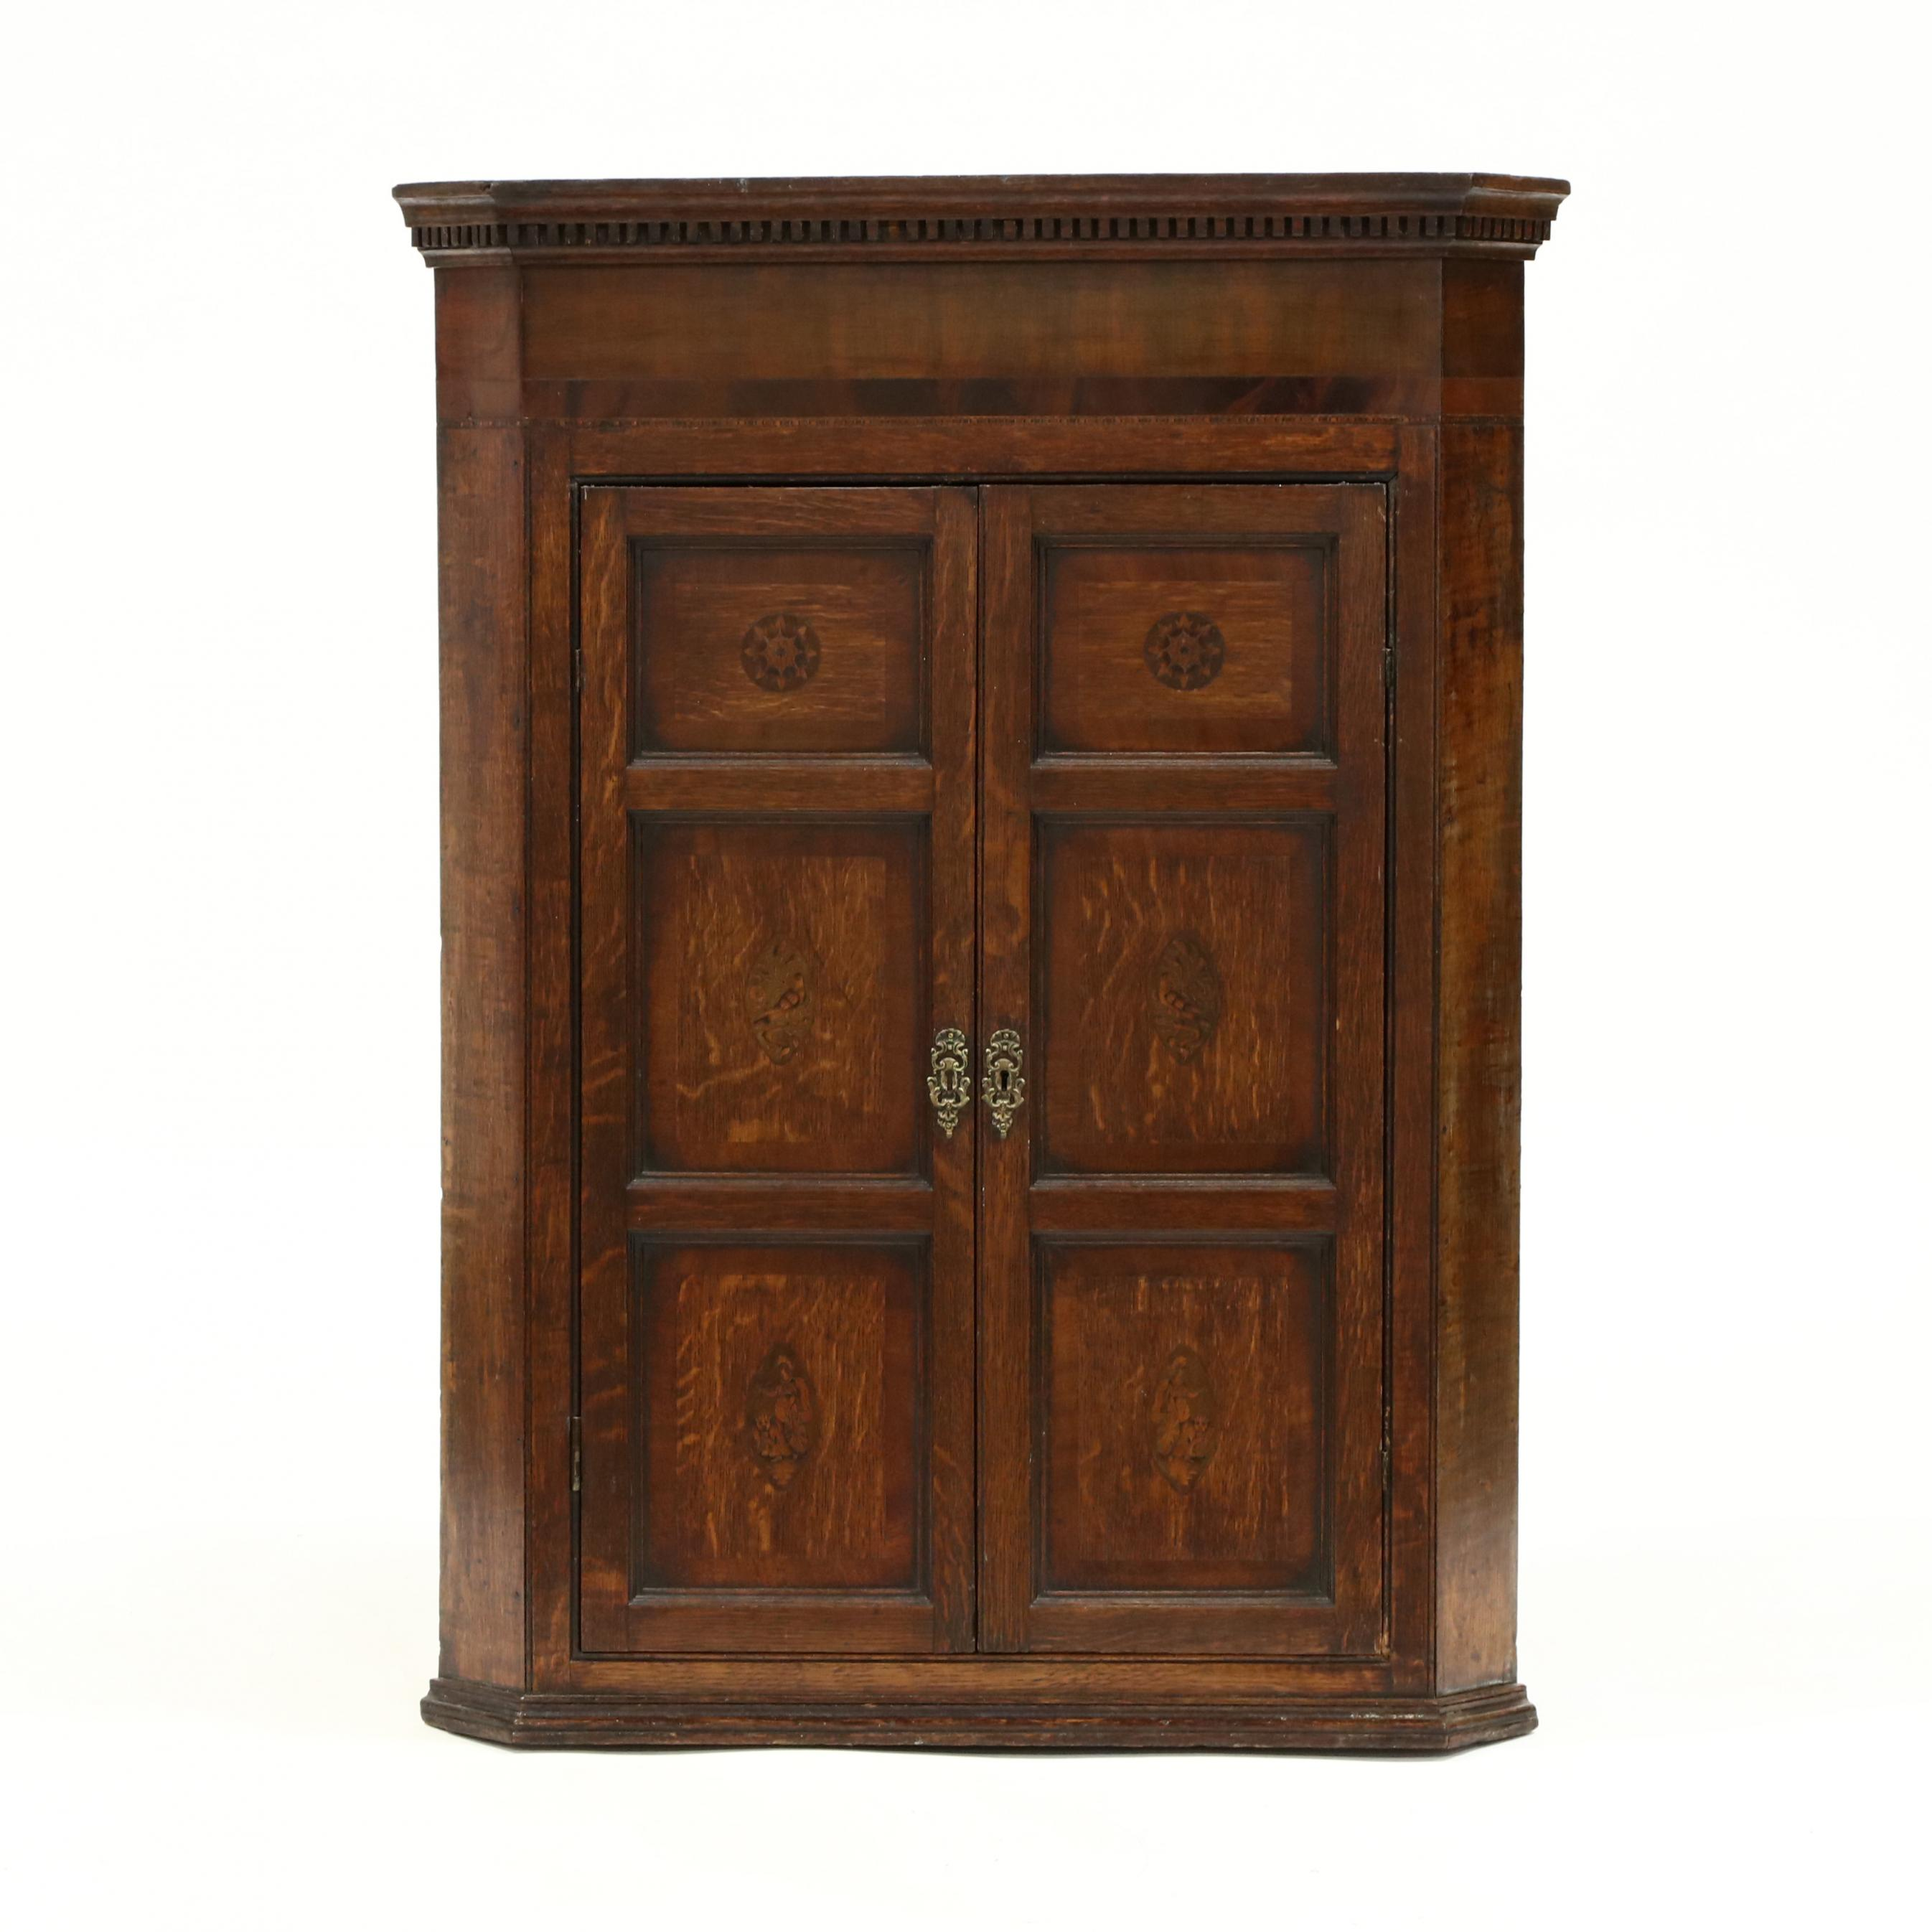 george-iii-inlaid-oak-hanging-corner-cupboard